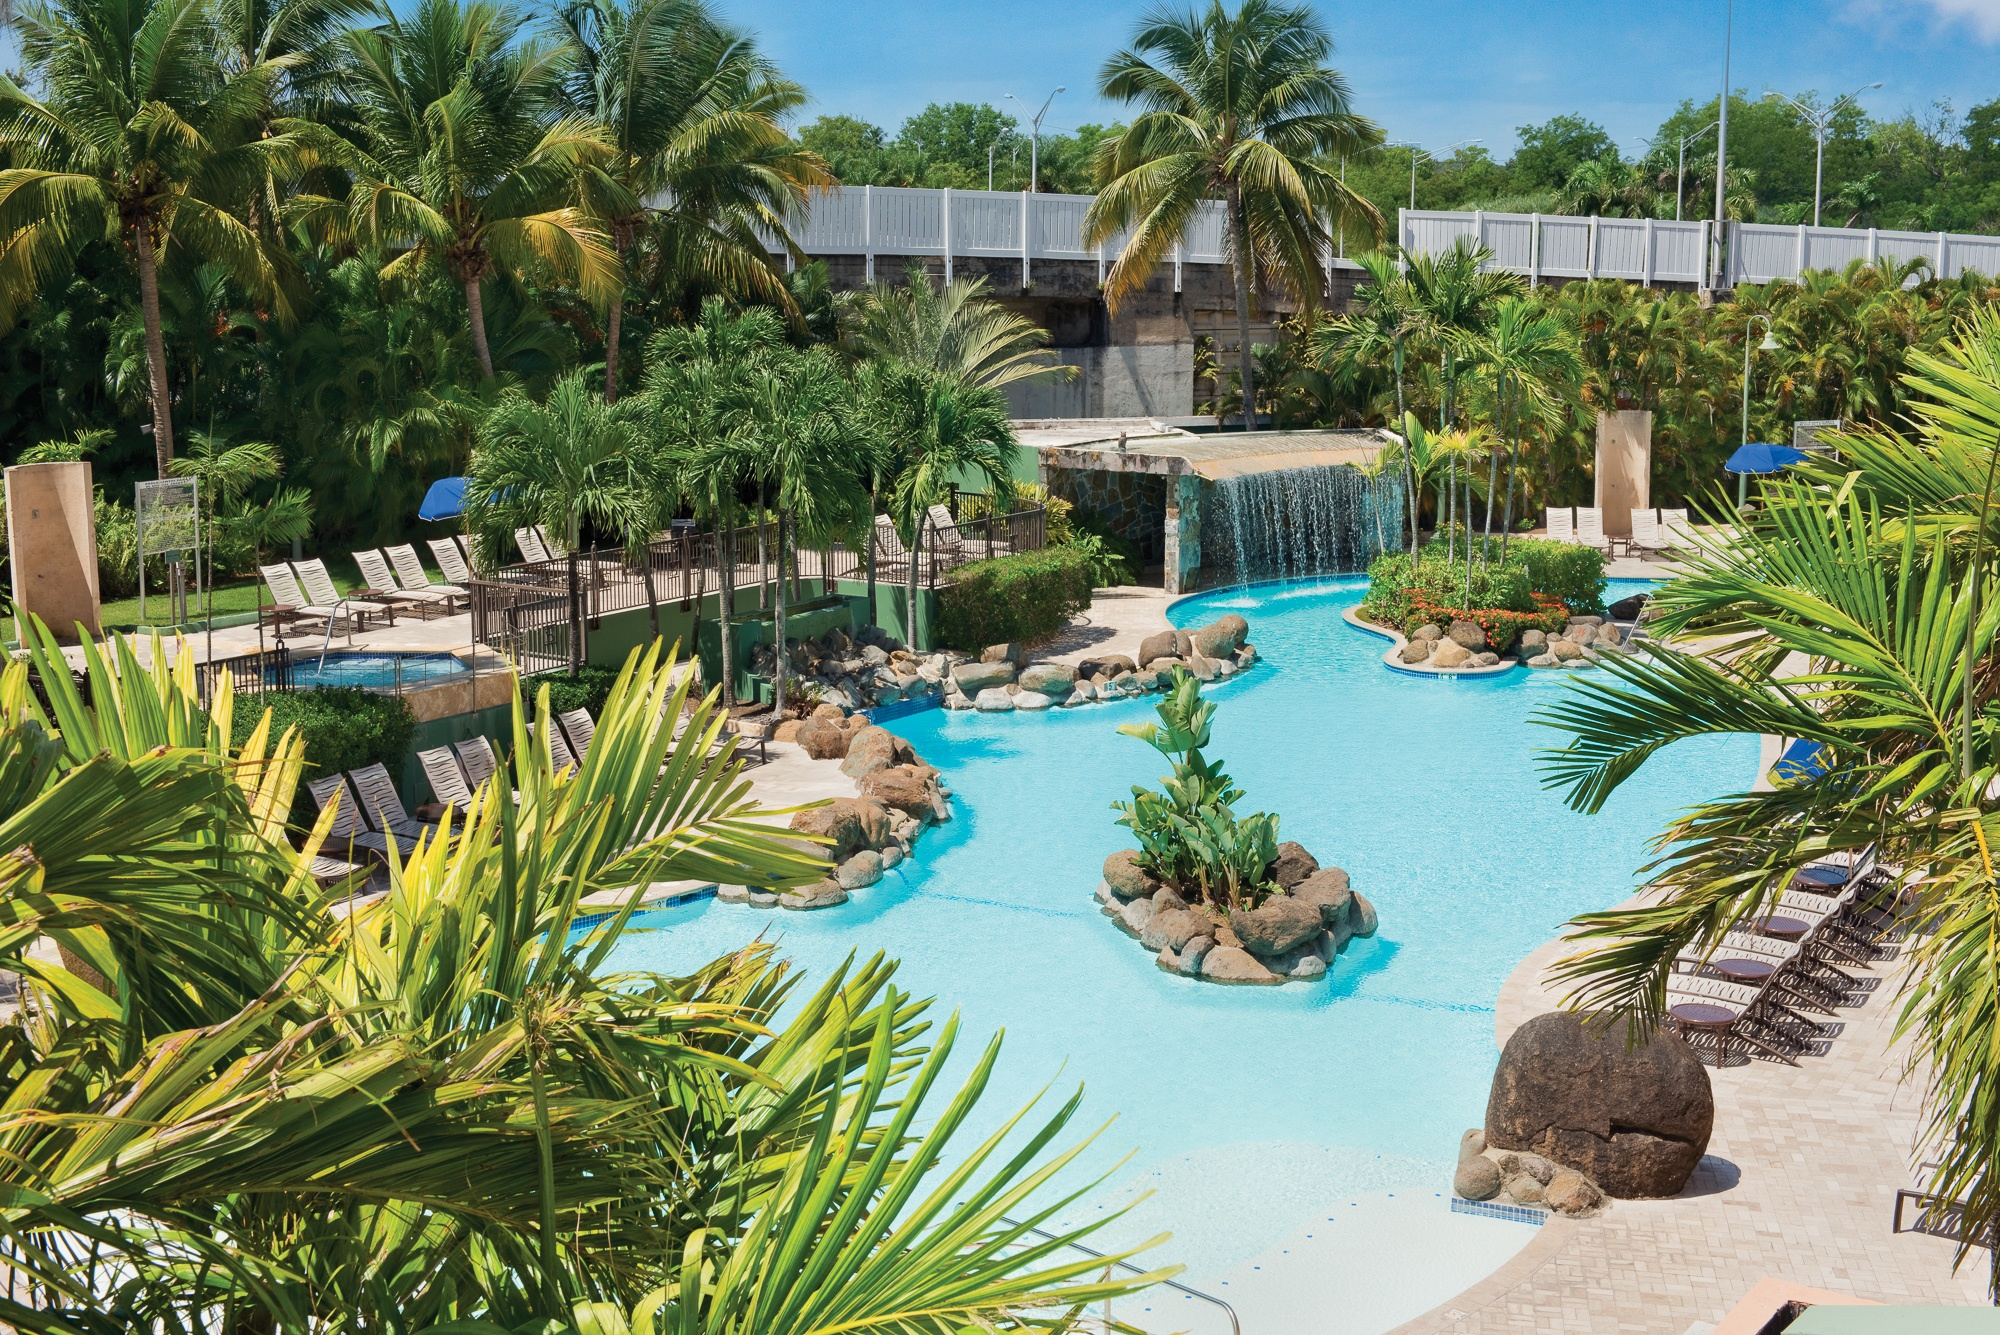 Puerto Rico hotel pool with waterfall